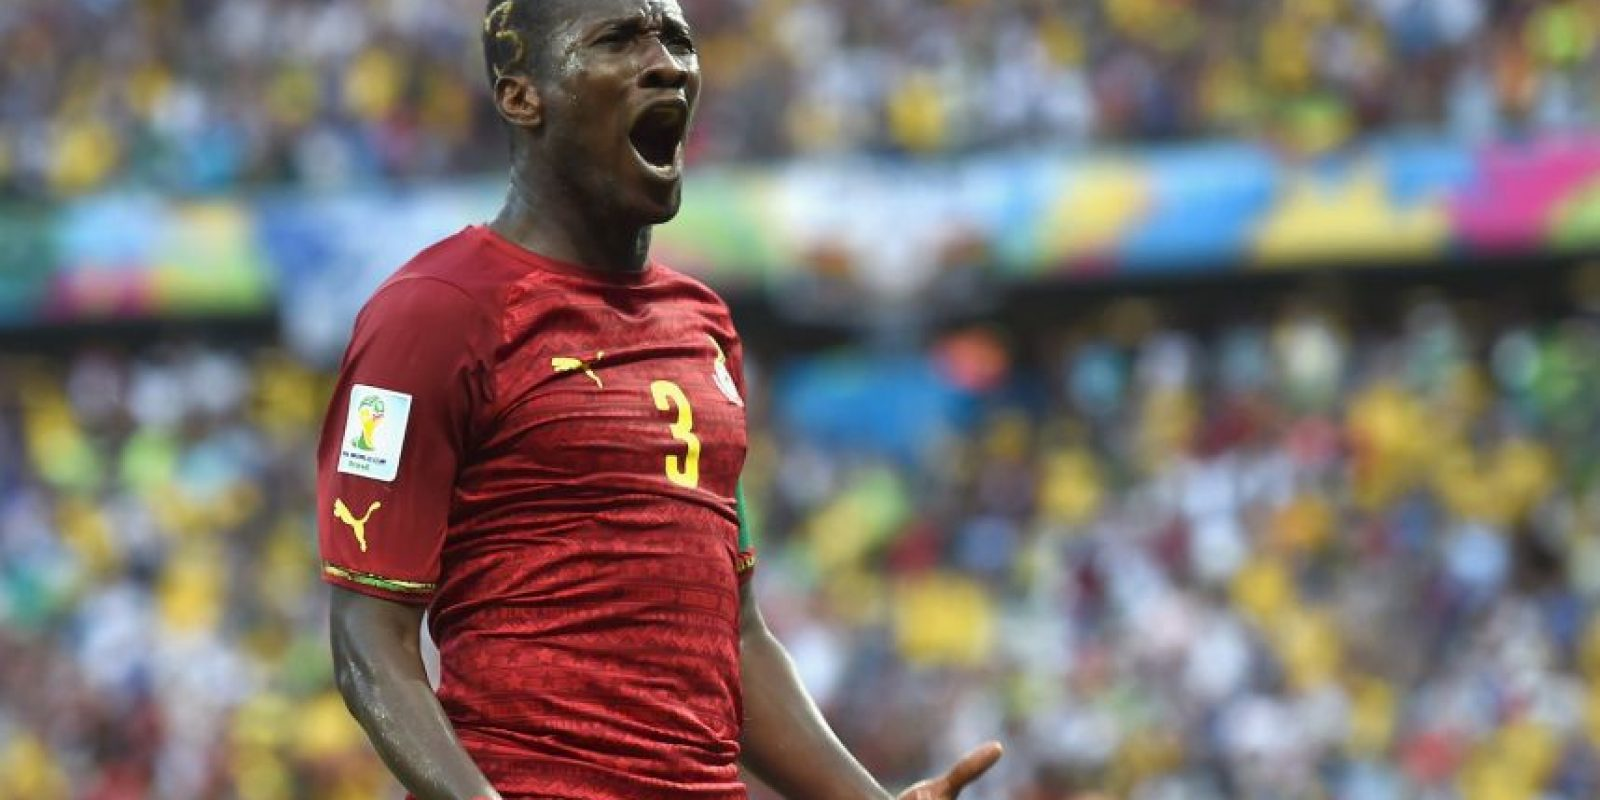 9. Asamoah Gyan Foto: Getty Images